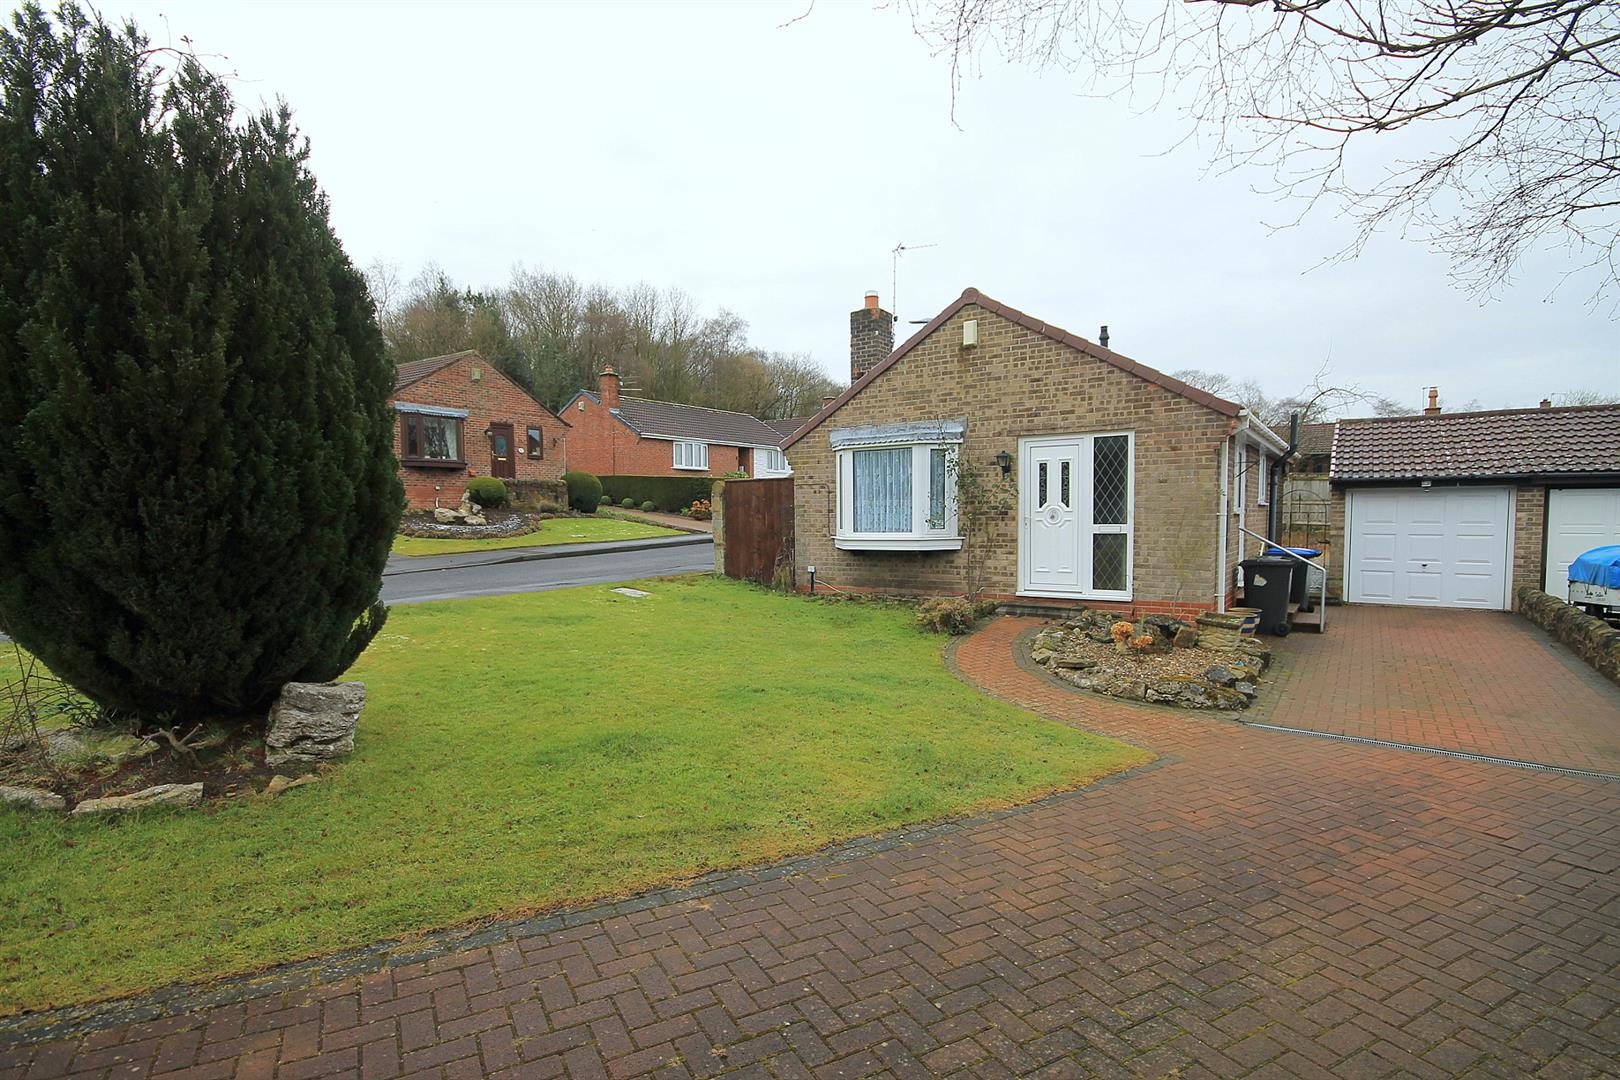 2 Bedrooms Detached Bungalow for sale in Swallow Close, Esh Winning, Durham